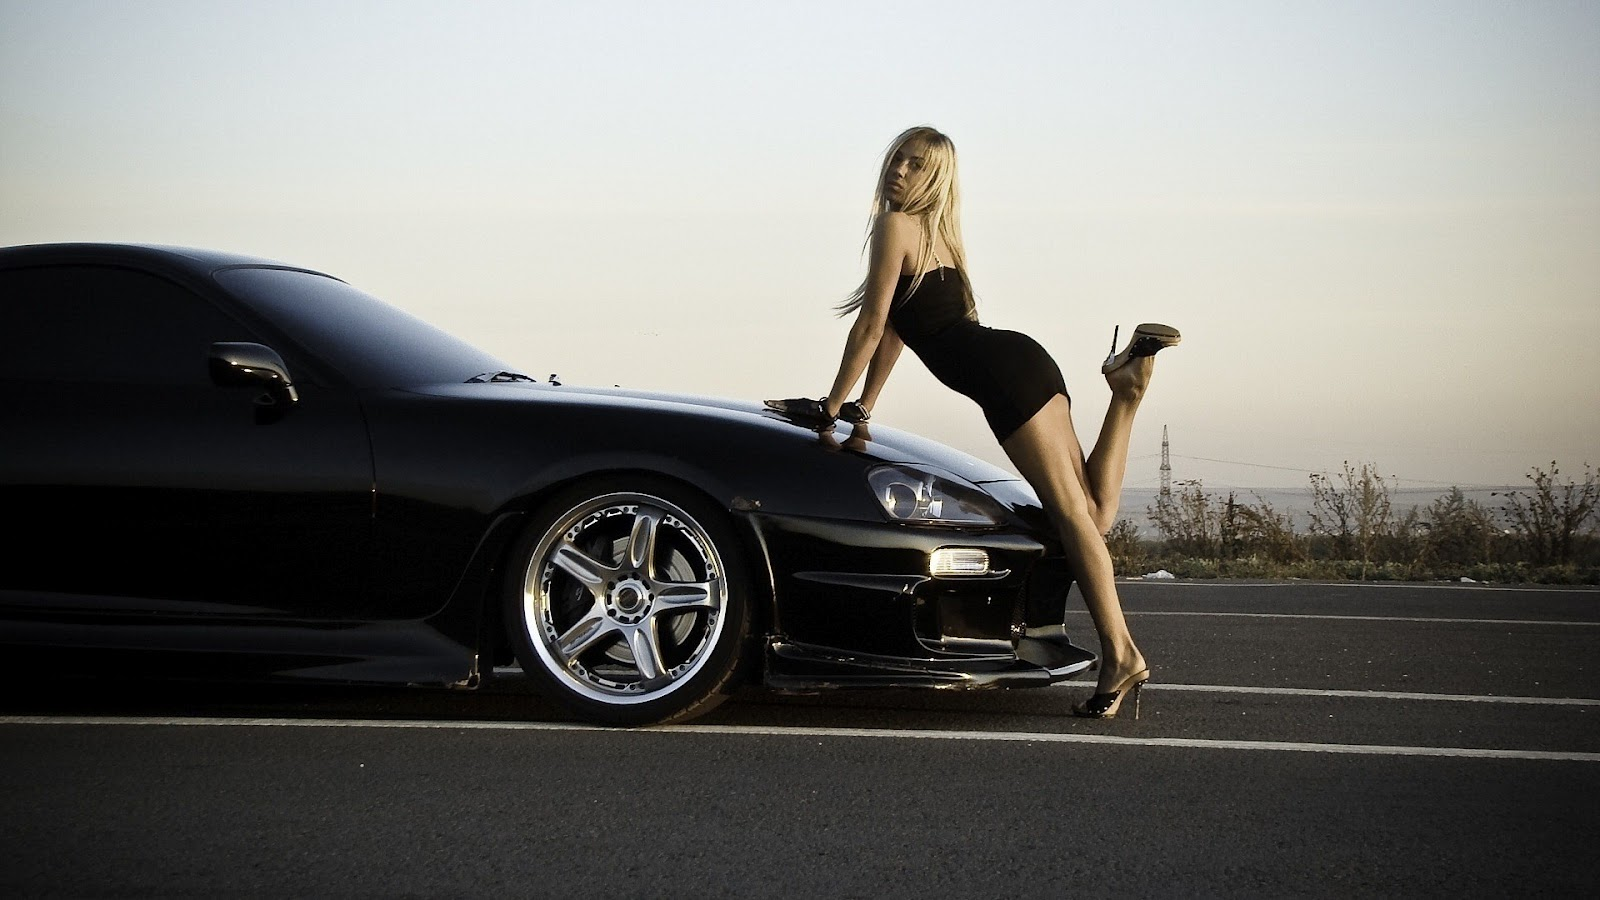 15 cars and girls pictures